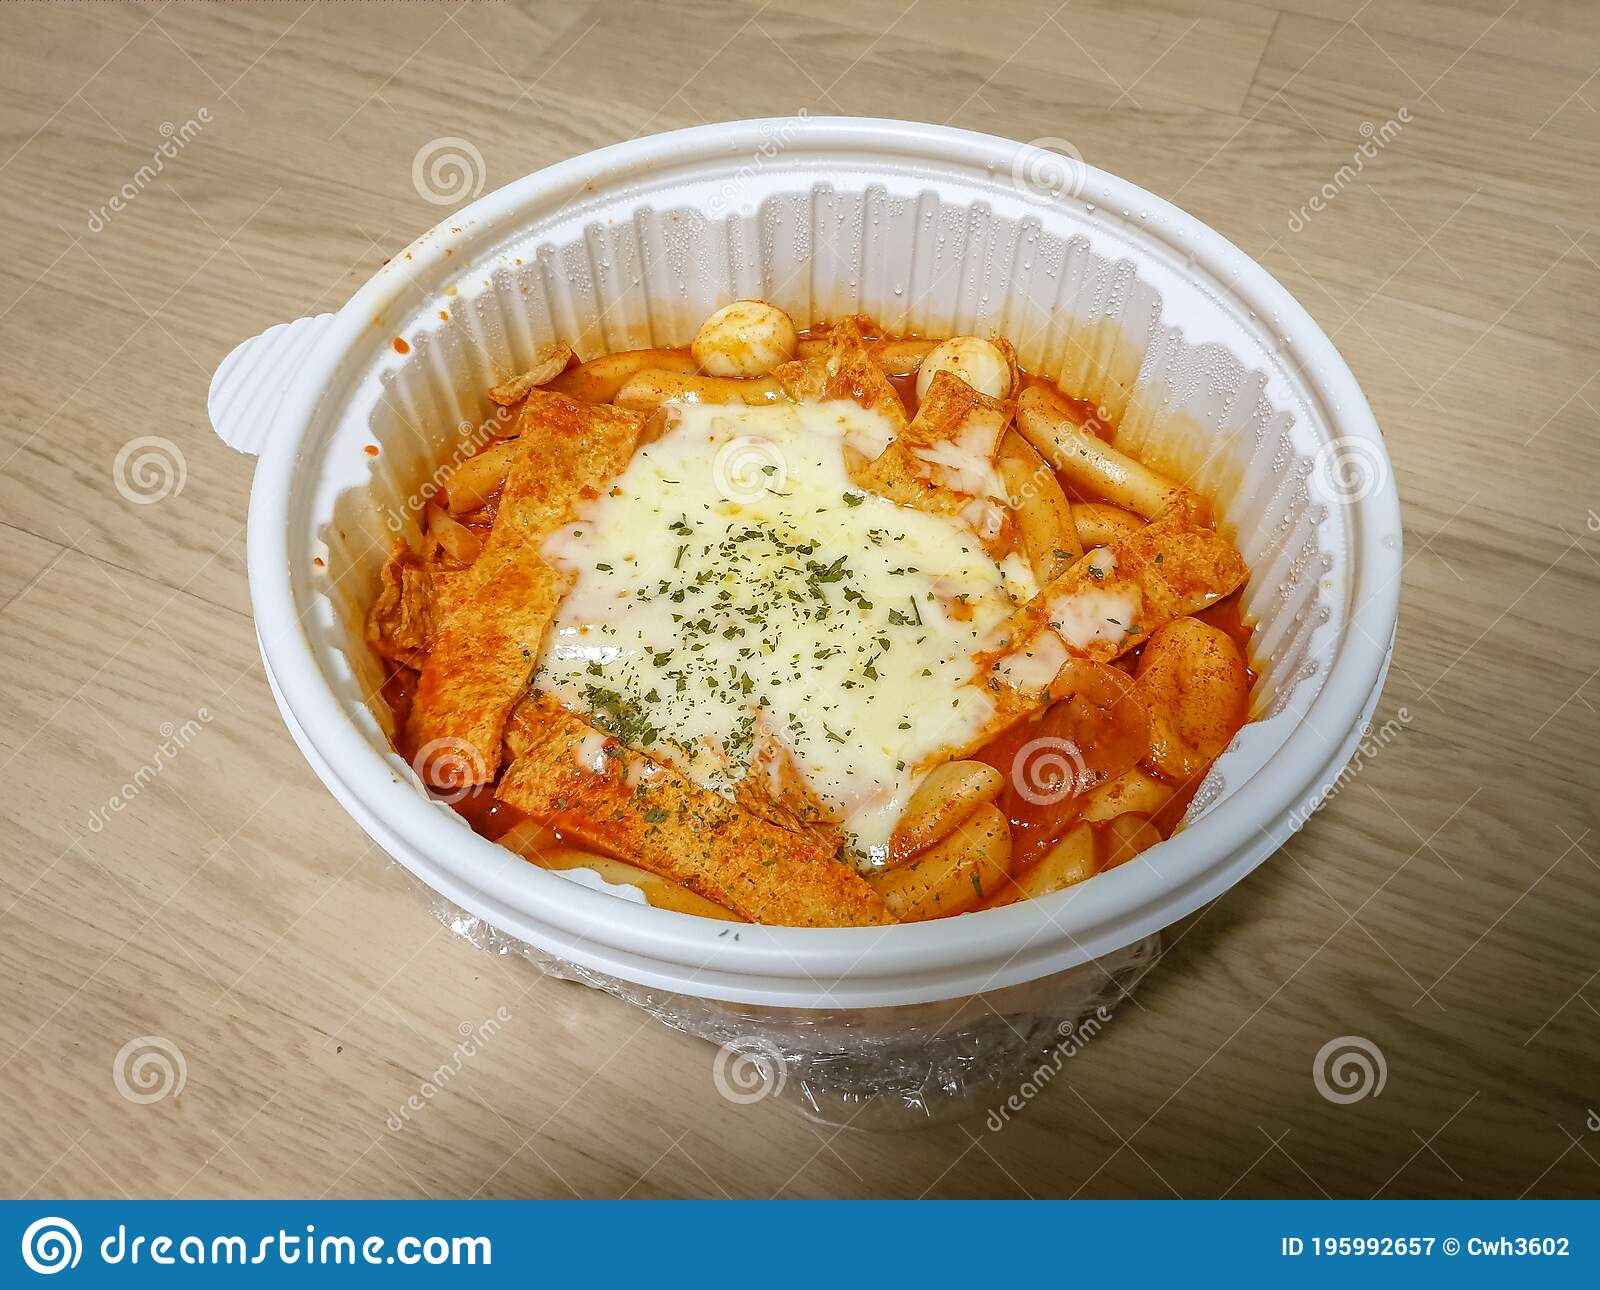 Tteok Bokki Or Stir Fried Rice Cakes Popular Korean Food Made From Small Sized Rice Cake Fish Cake And Boiled Egg Stock Image Image Of Delicious Local 195992657